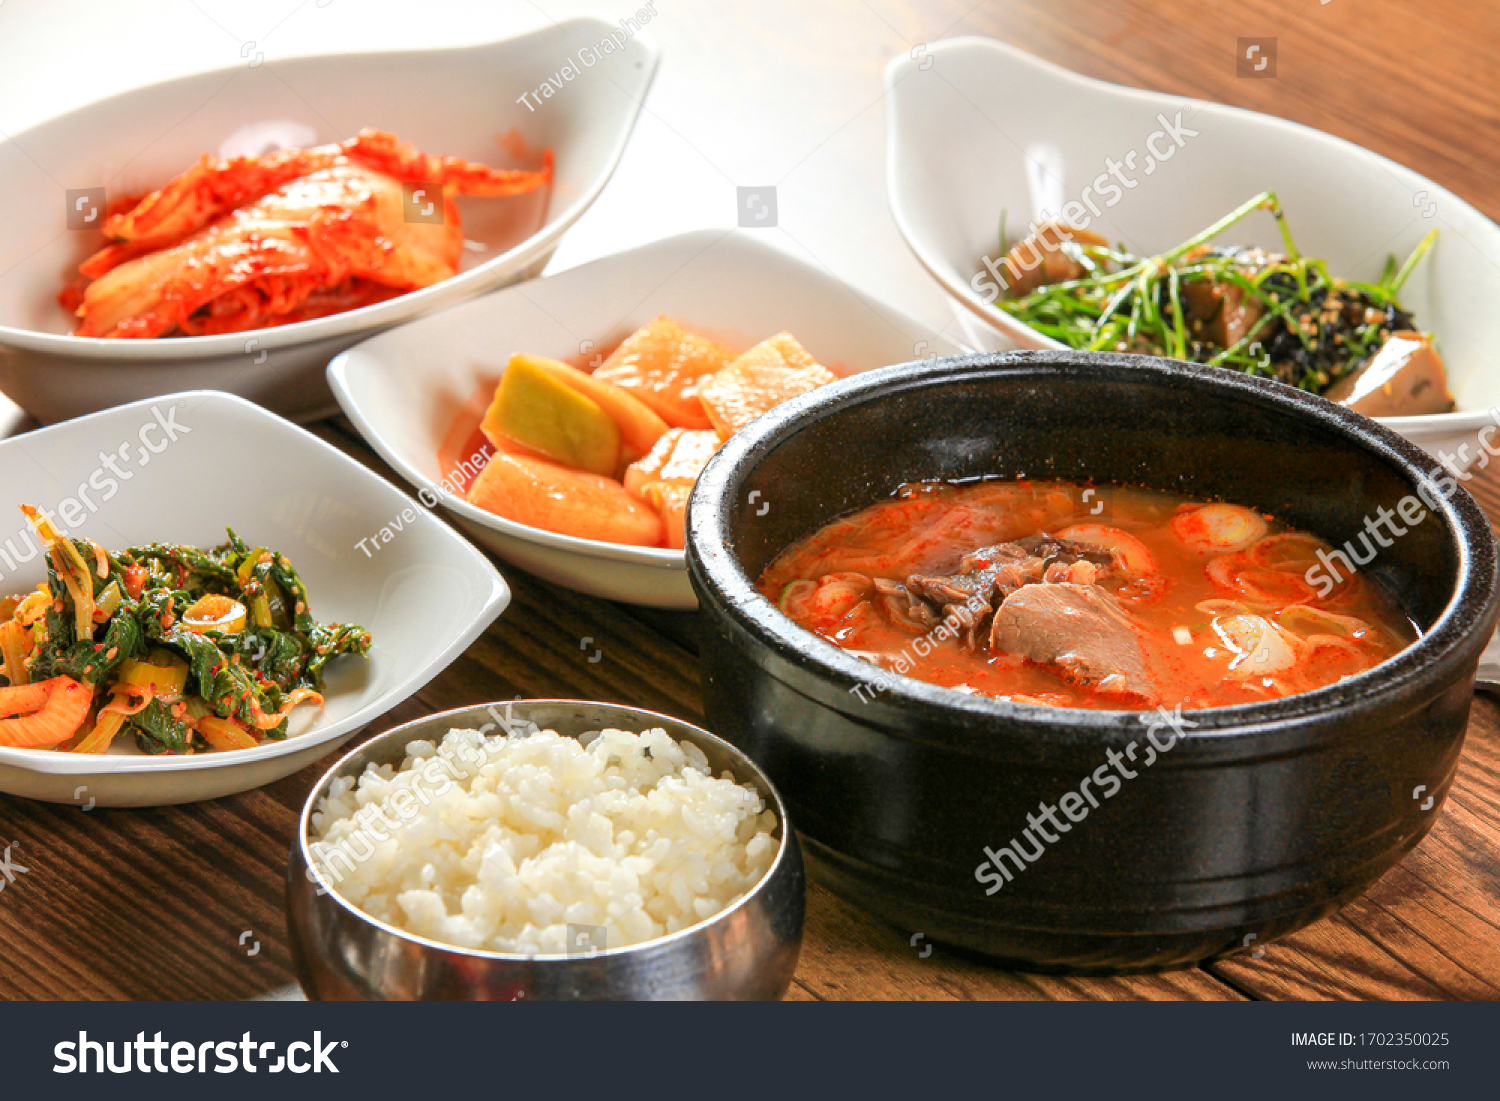 Korean food - Beef and rice soup #1702350025